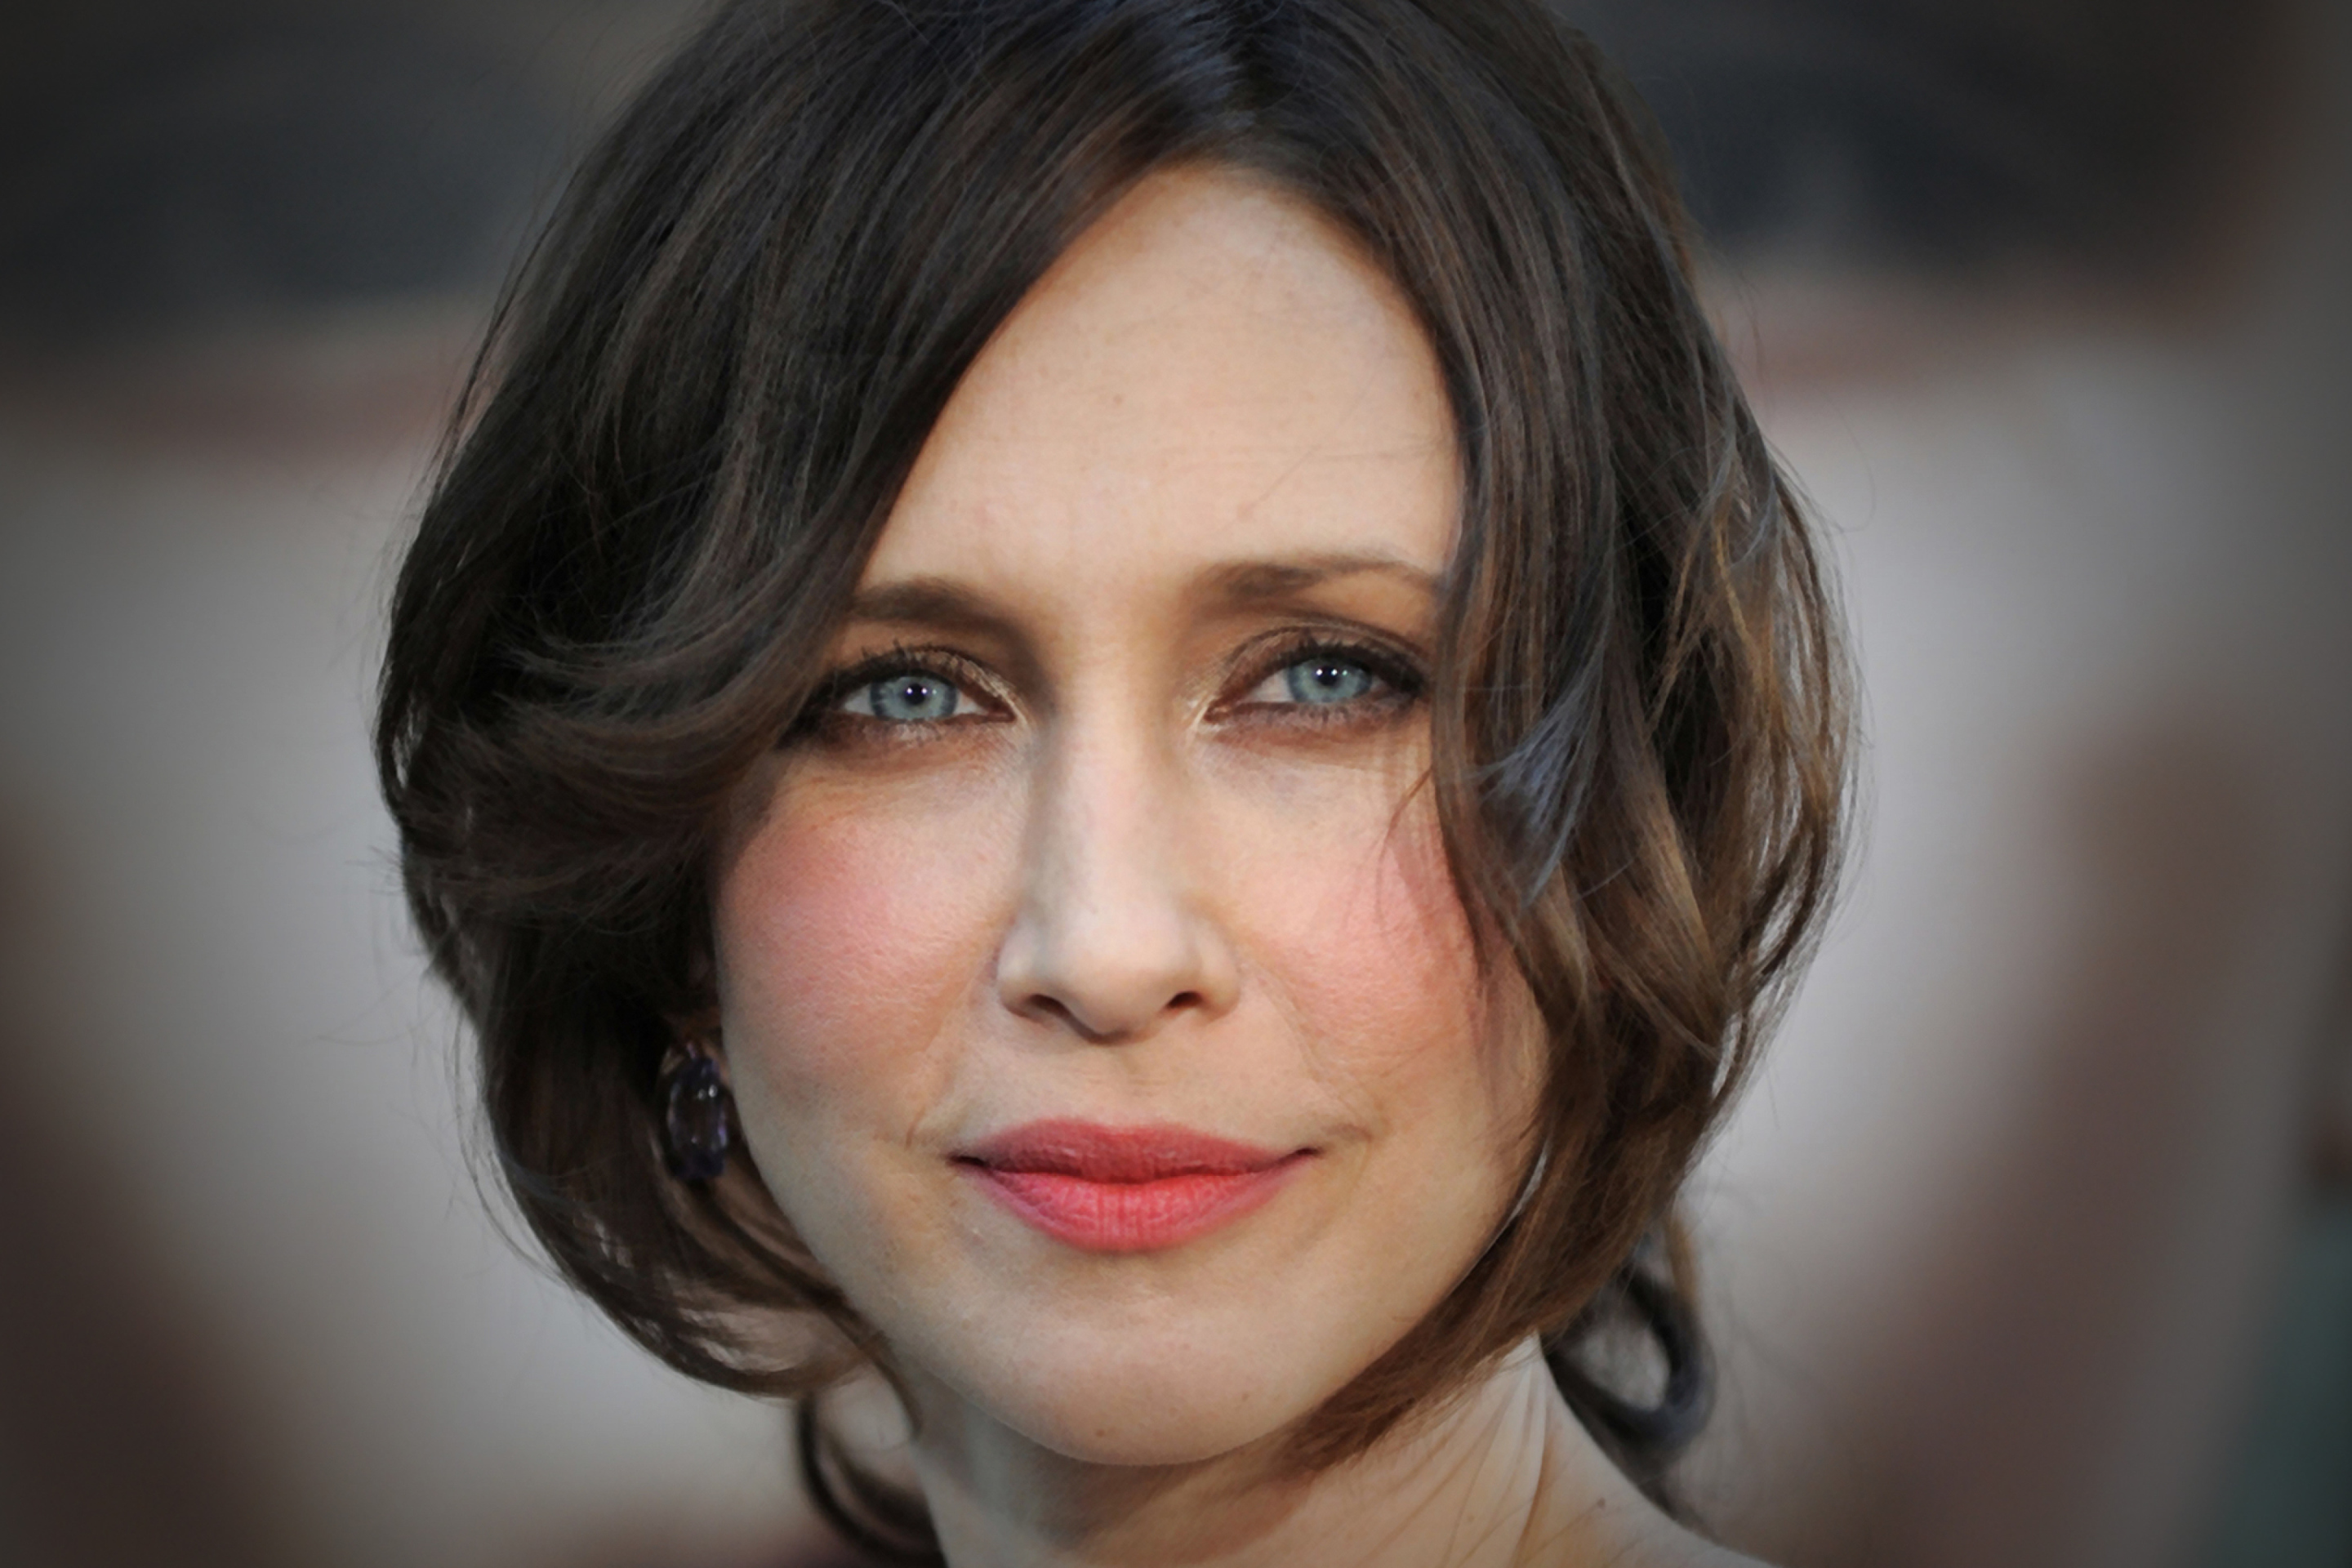 Vera Farmiga Wallpapers Images Photos Pictures Backgrounds 2880x1920